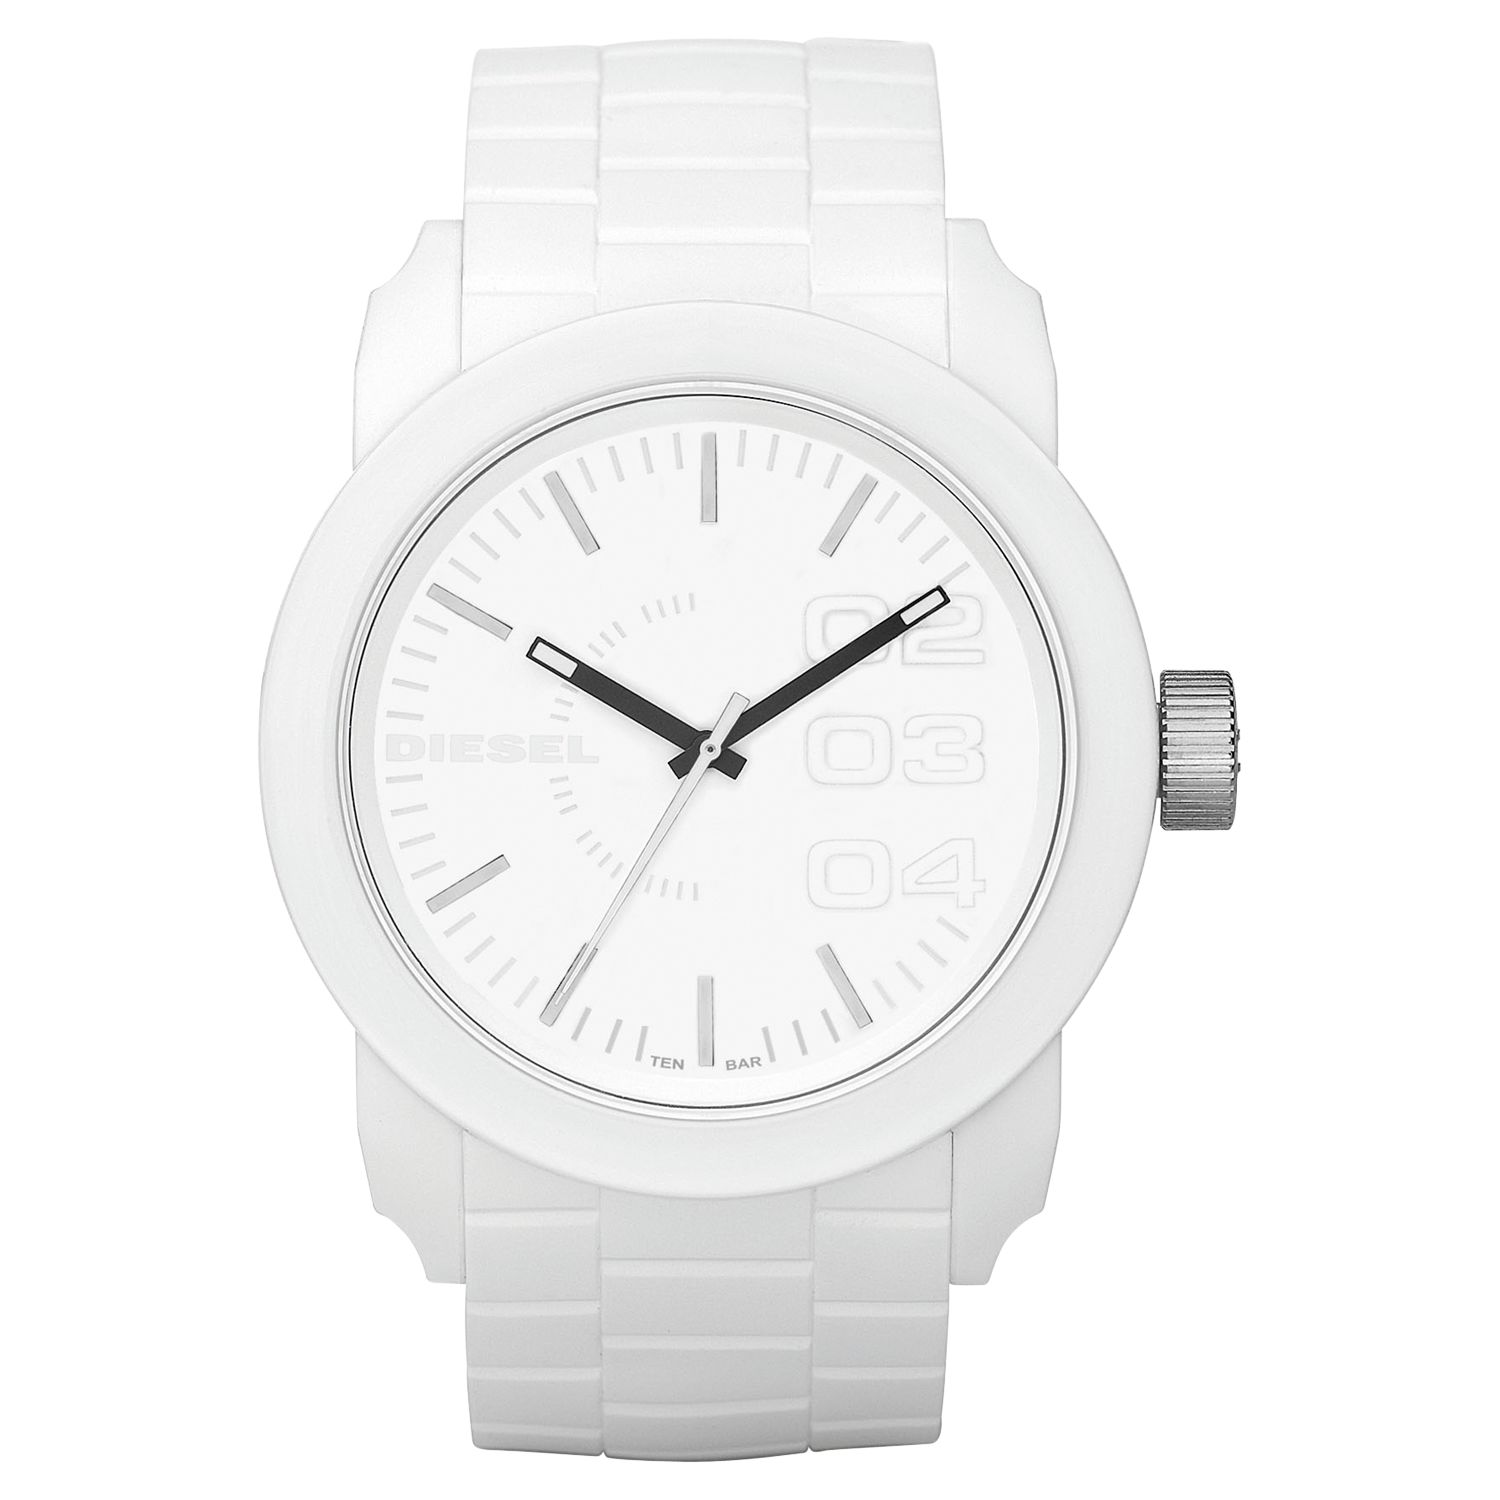 Diesel DZ1436 Young Blood Unisex White Round Rubber Strap Watch